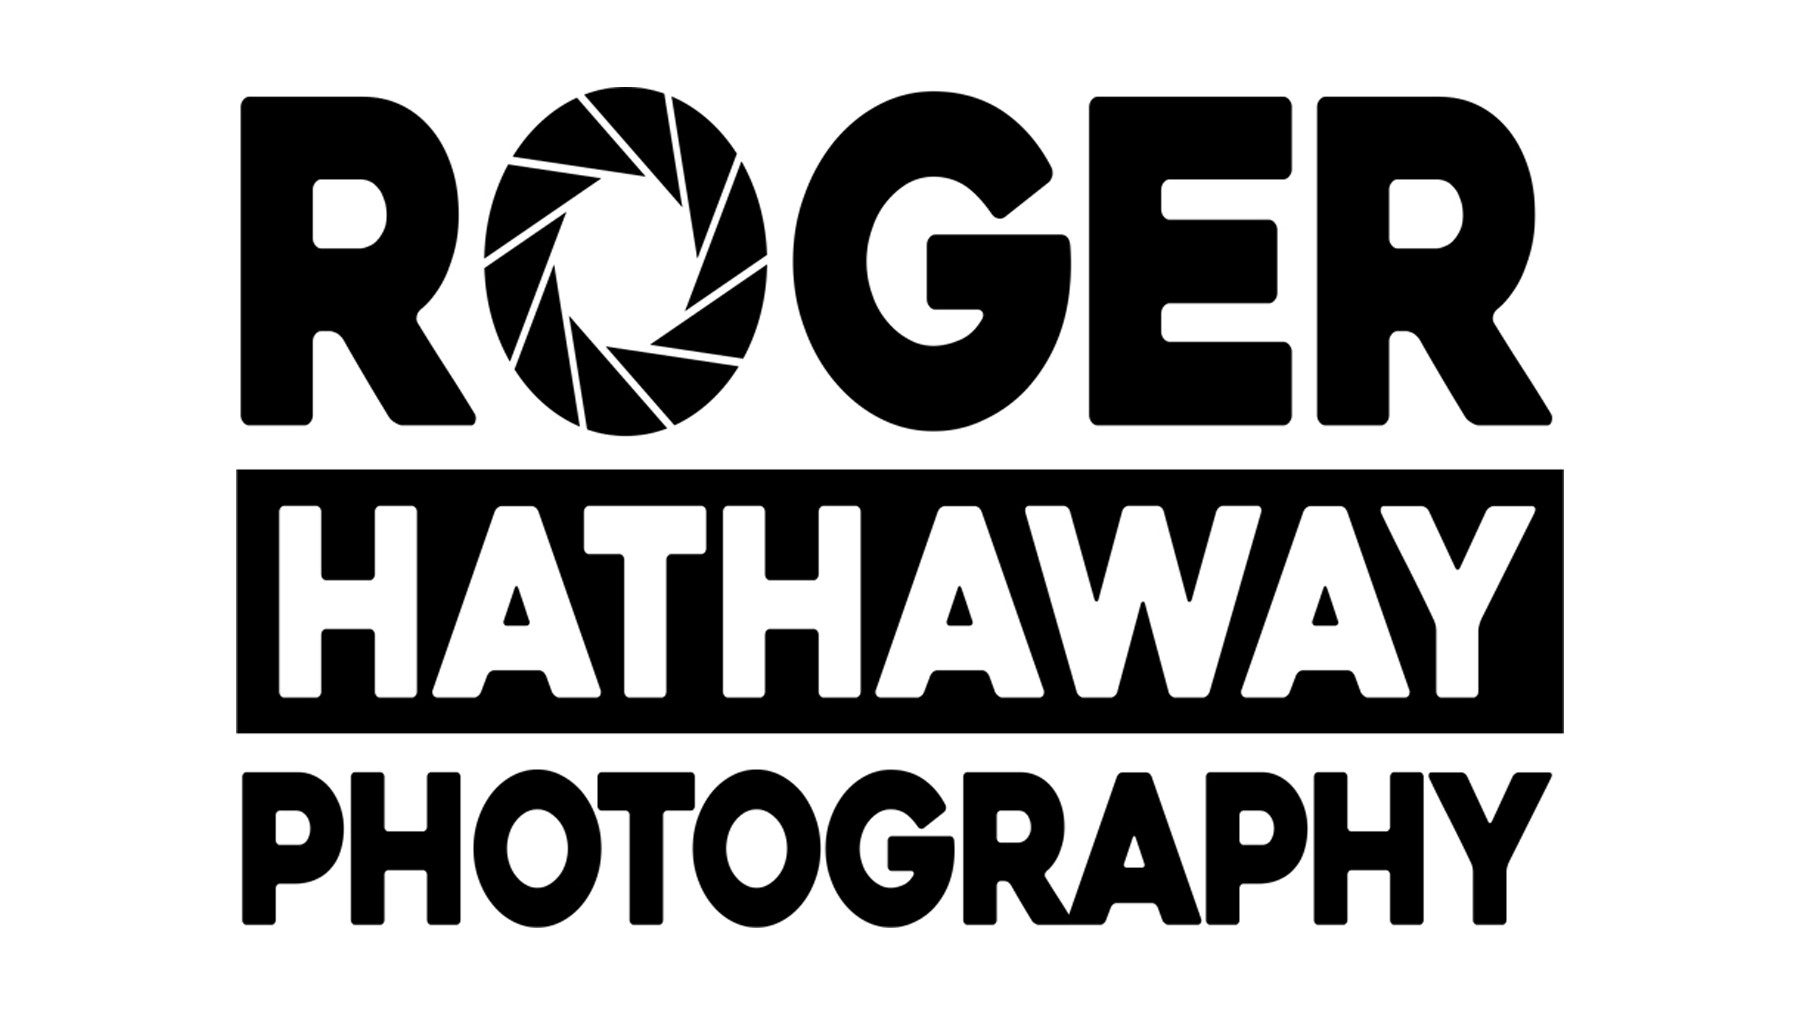 Roger Hathaway Photography